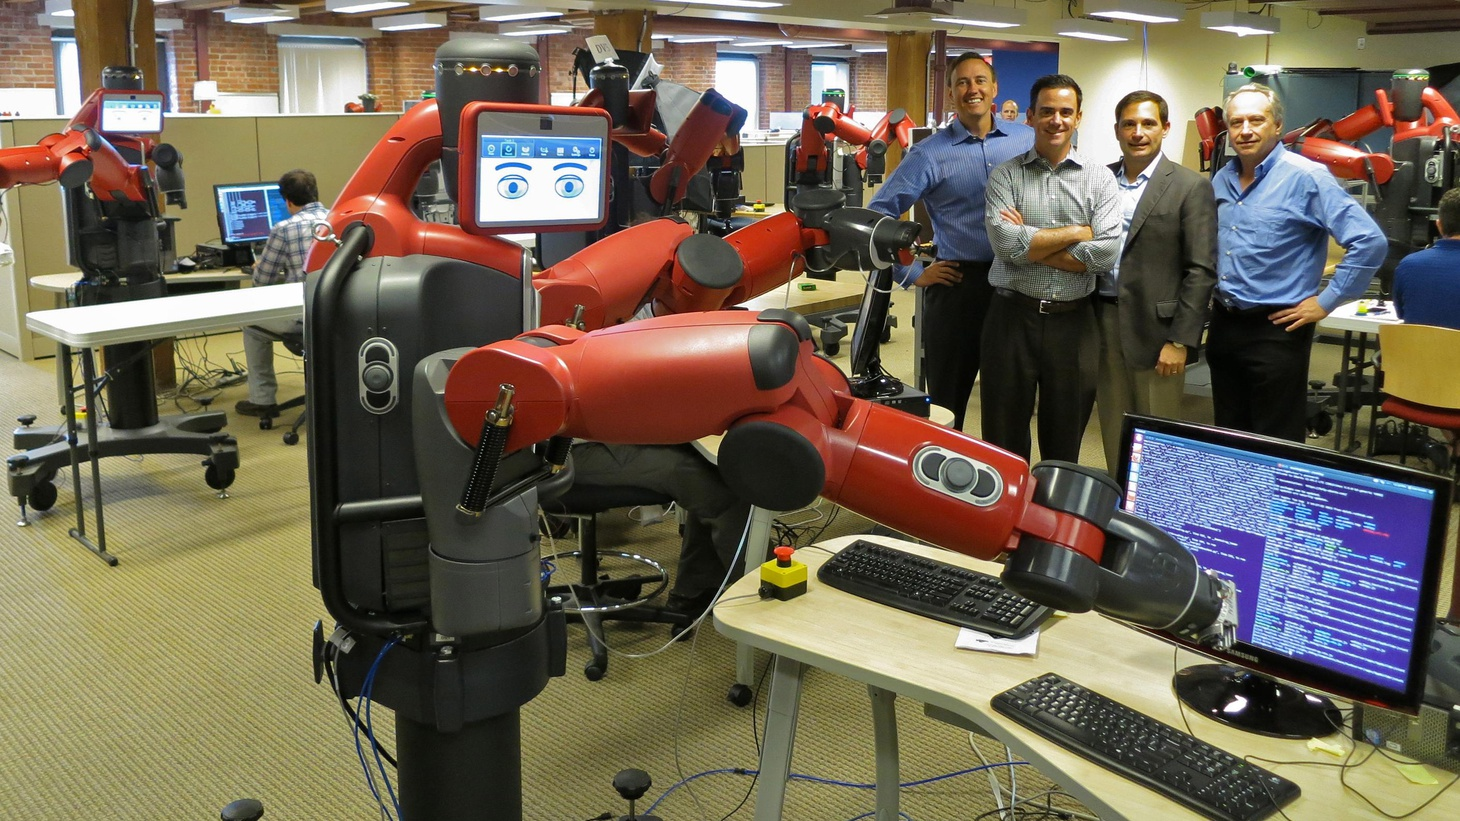 On this archived edition of To the Point, we talk about robotics and the increased interaction of robots with human beings.